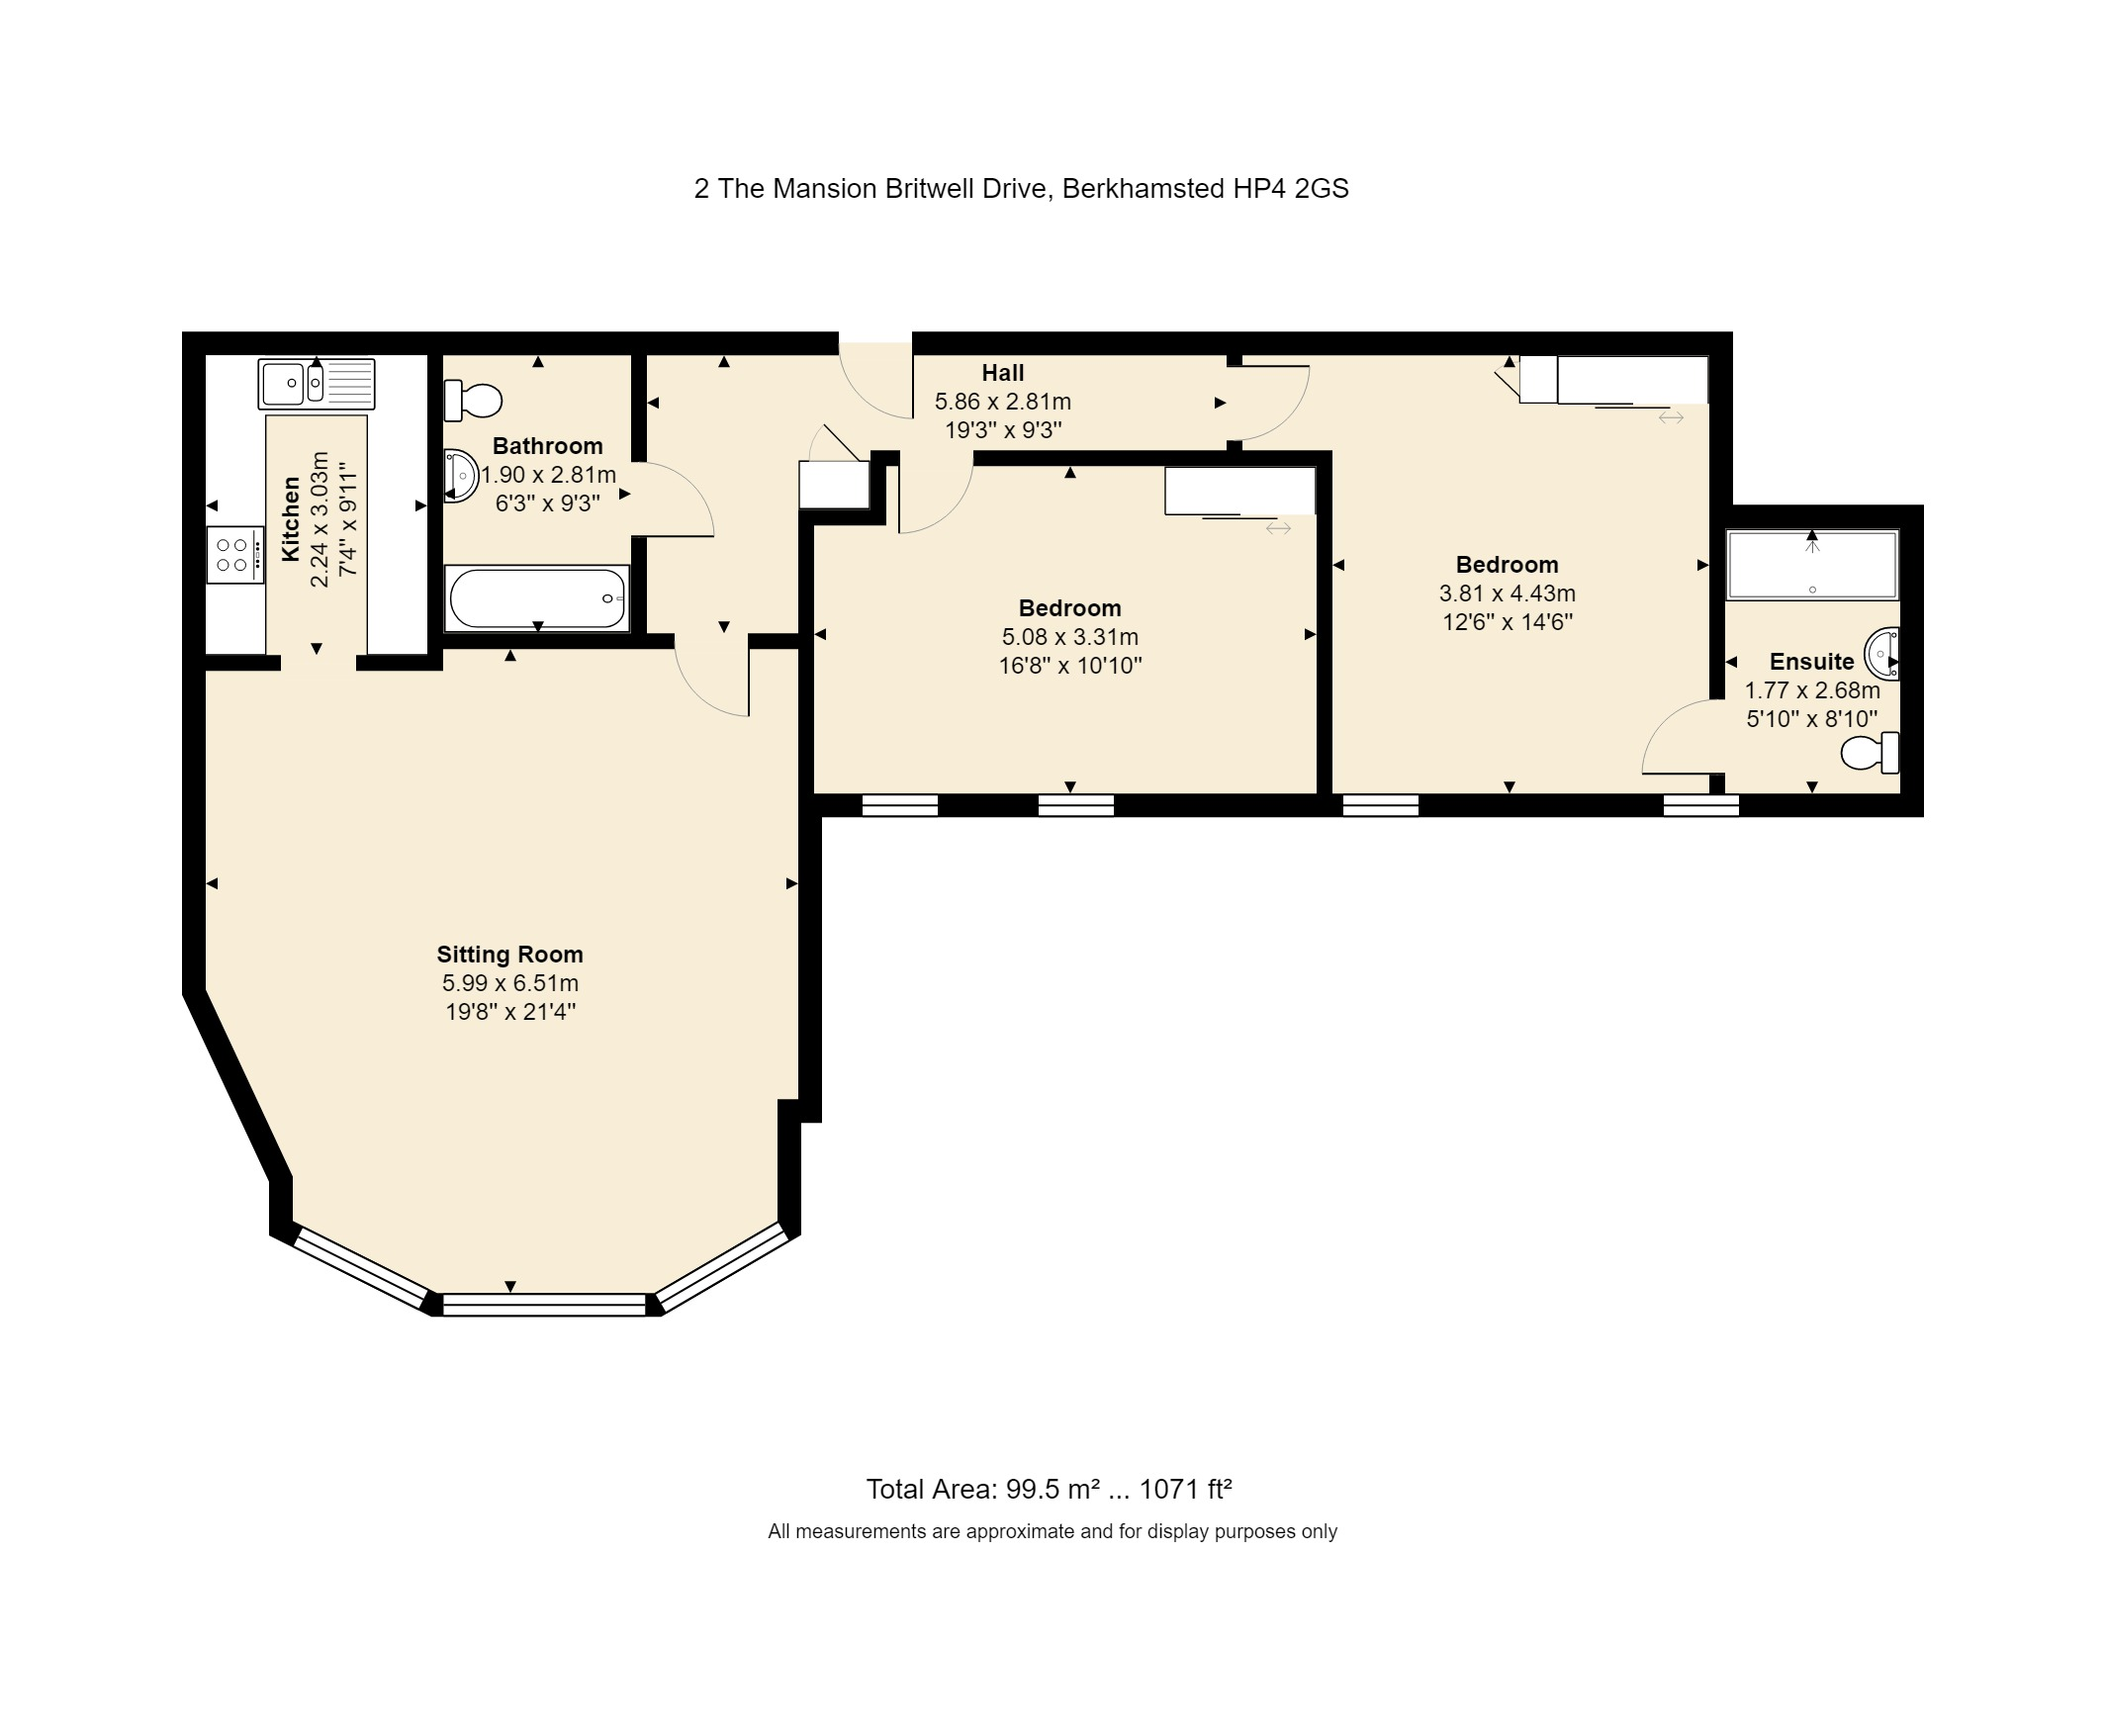 2 The Mansion Floorplan